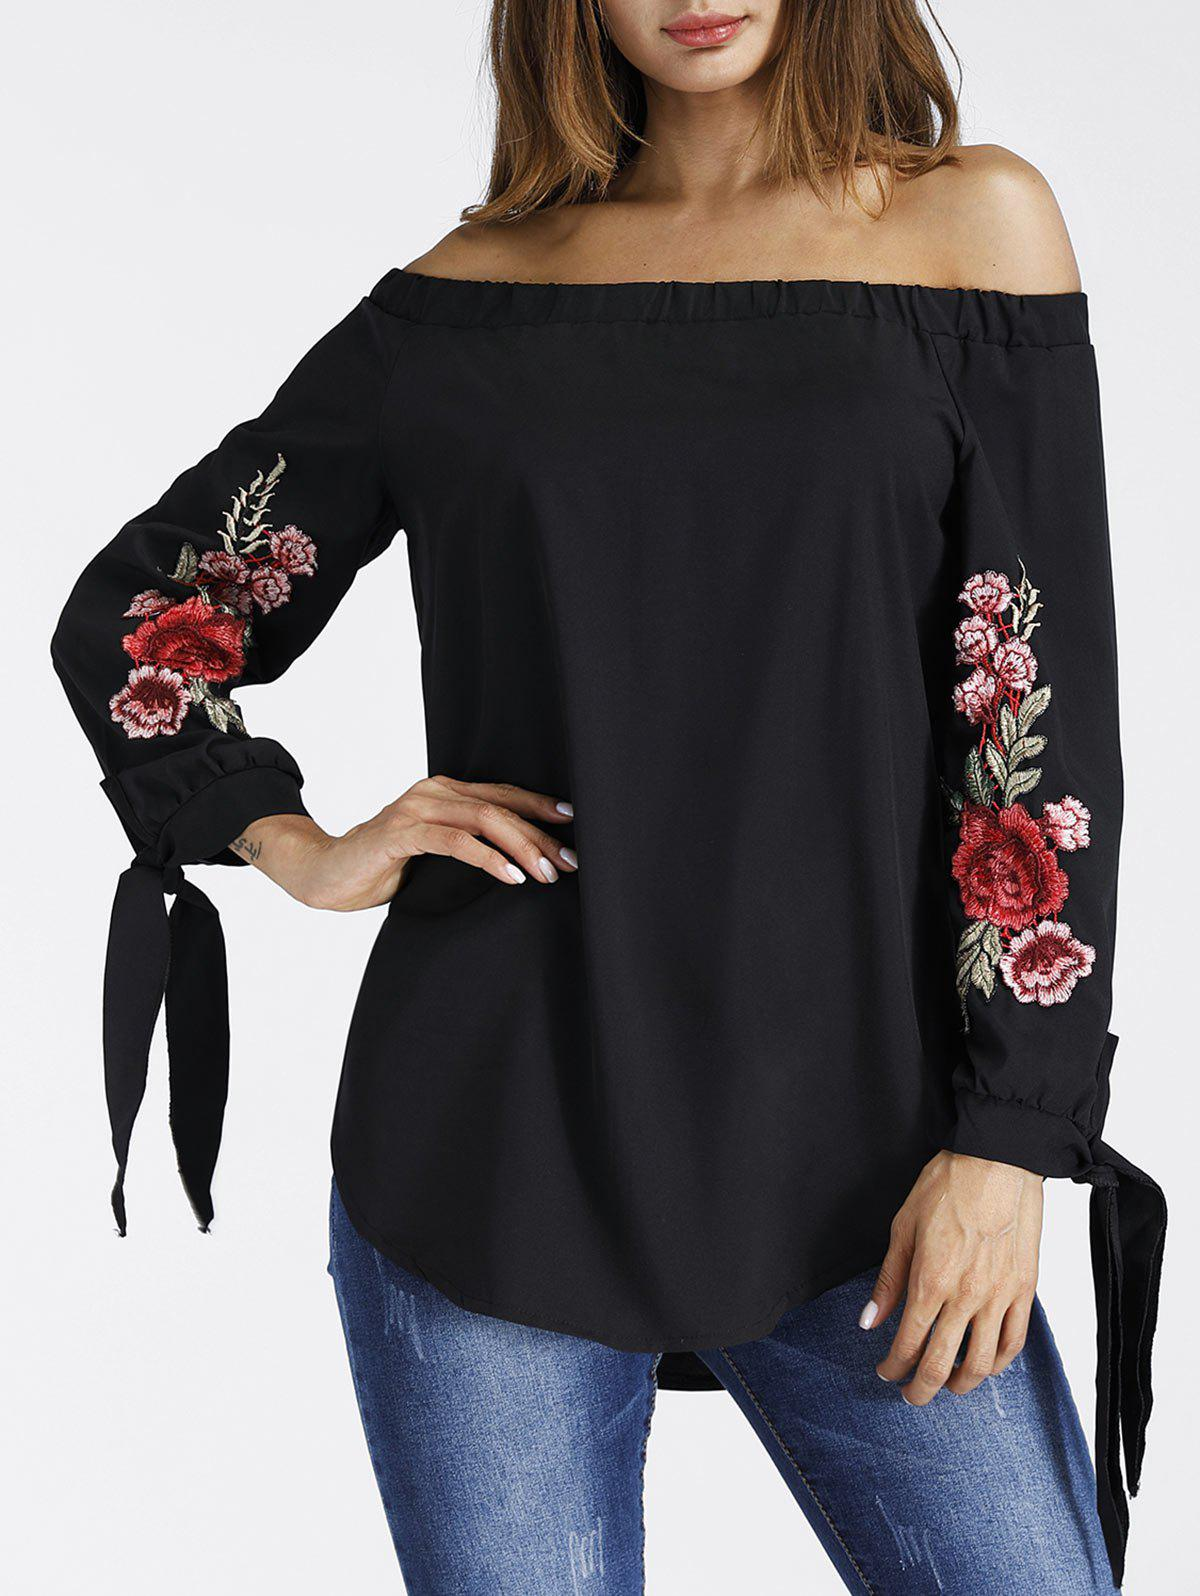 Floral Embroidered Off The Shoulder BlouseWOMEN<br><br>Size: M; Color: BLACK; Style: Fashion; Material: Polyester; Shirt Length: Regular; Sleeve Length: Full; Collar: Off The Shoulder; Pattern Type: Floral; Embellishment: Embroidery; Season: Fall,Spring; Weight: 0.2500kg; Package Contents: 1 x Blouse;